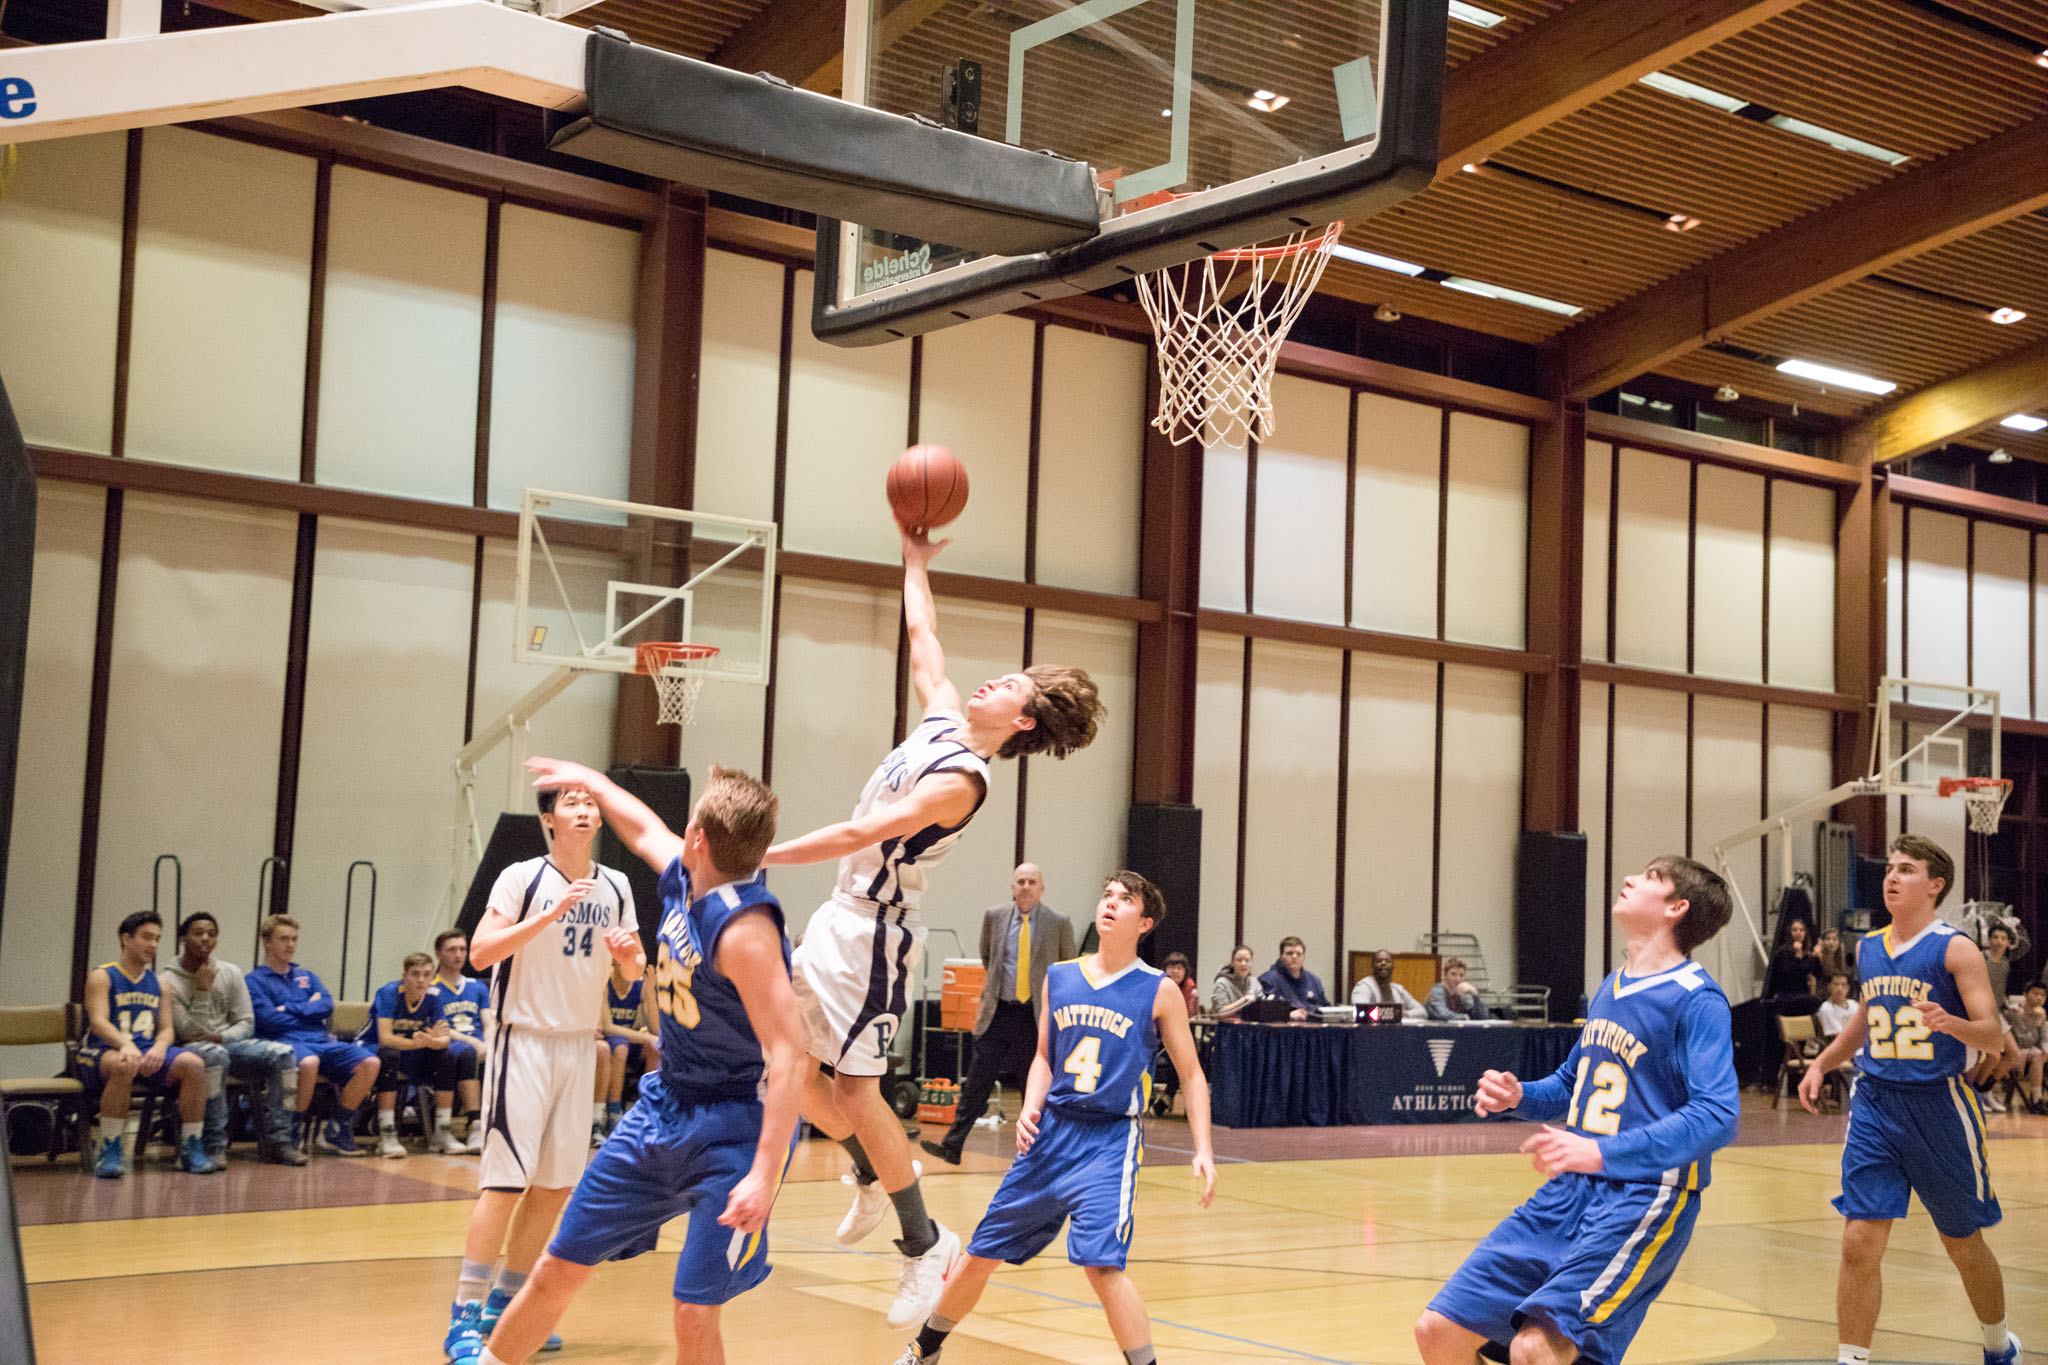 Ross Boy's High School Basketball players in the midst of an interscholastic game.